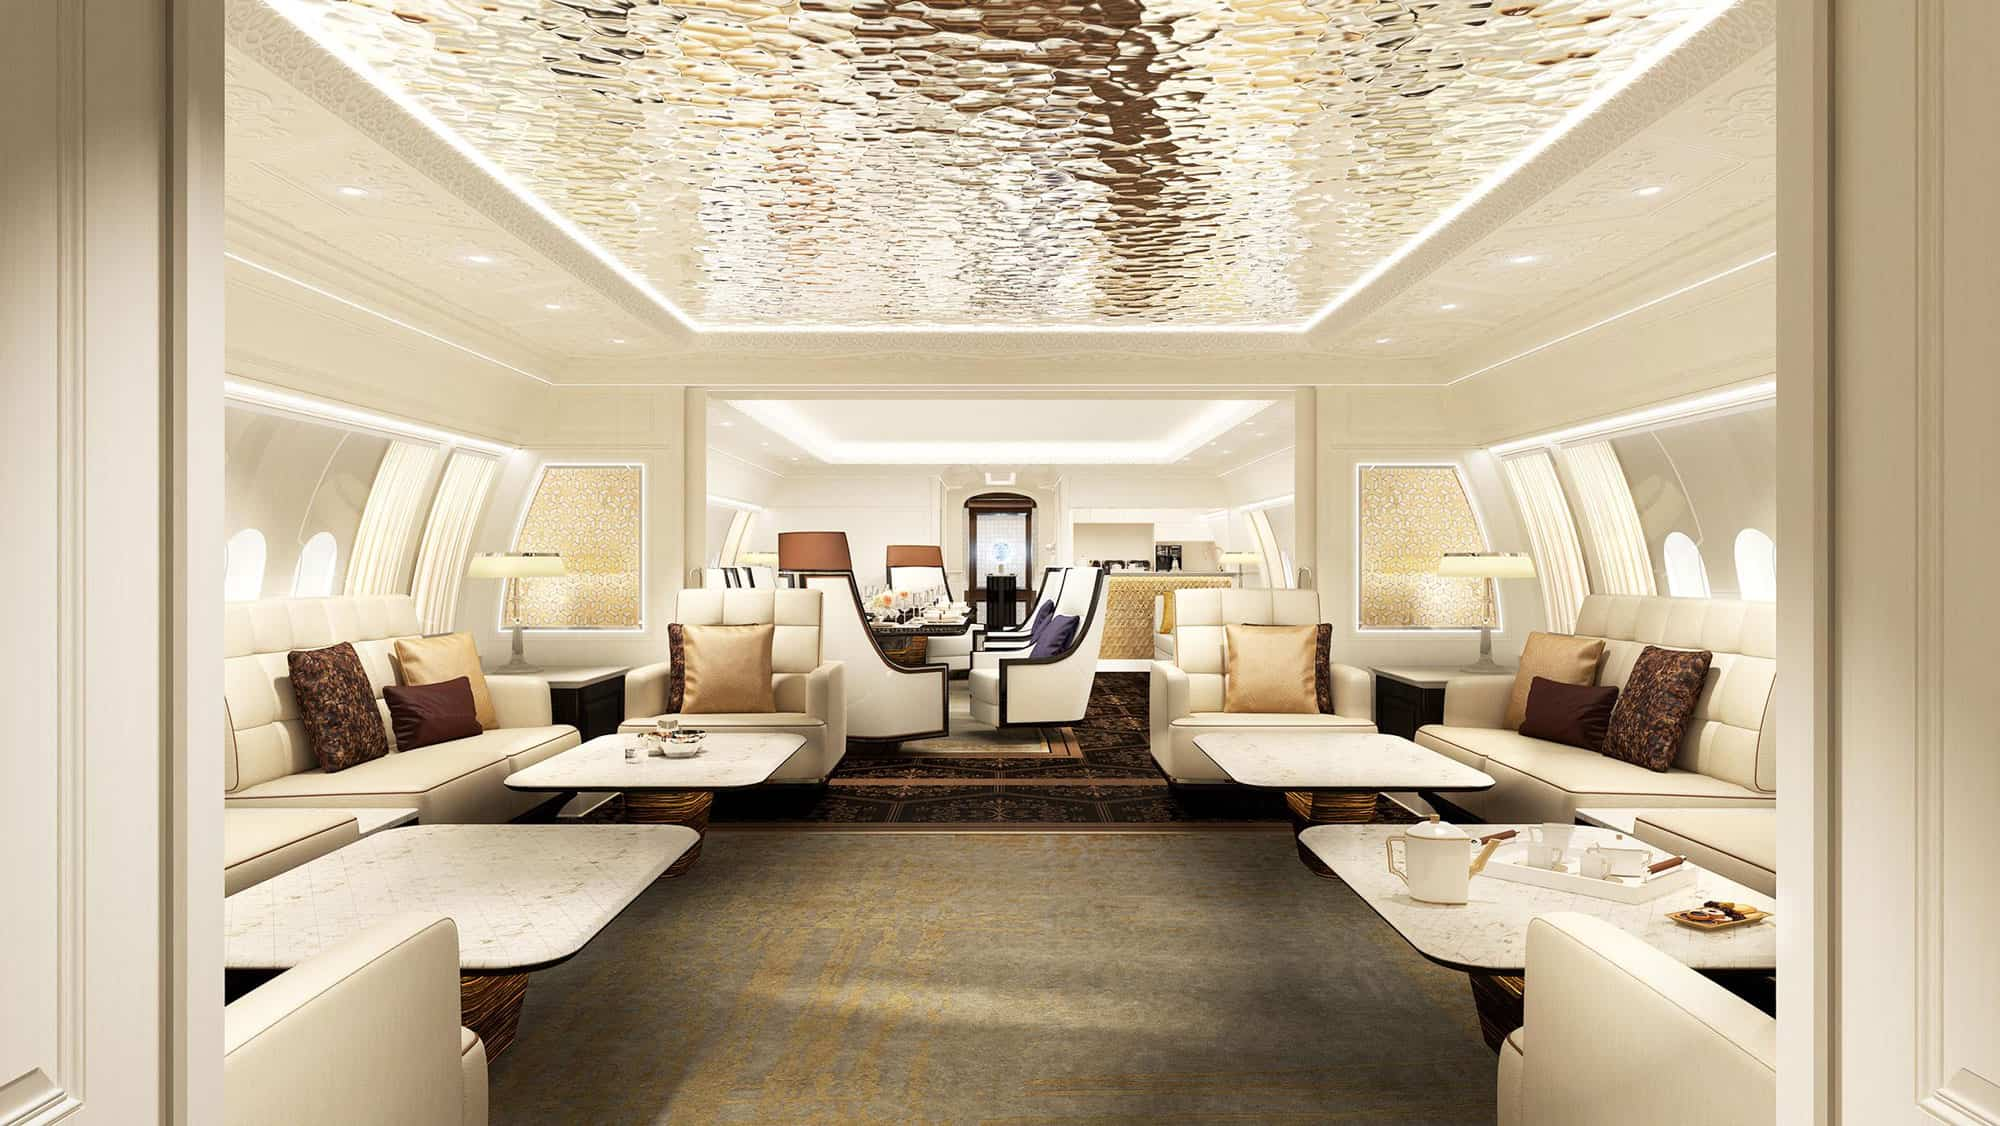 Interior Concept by Jet Aviation.